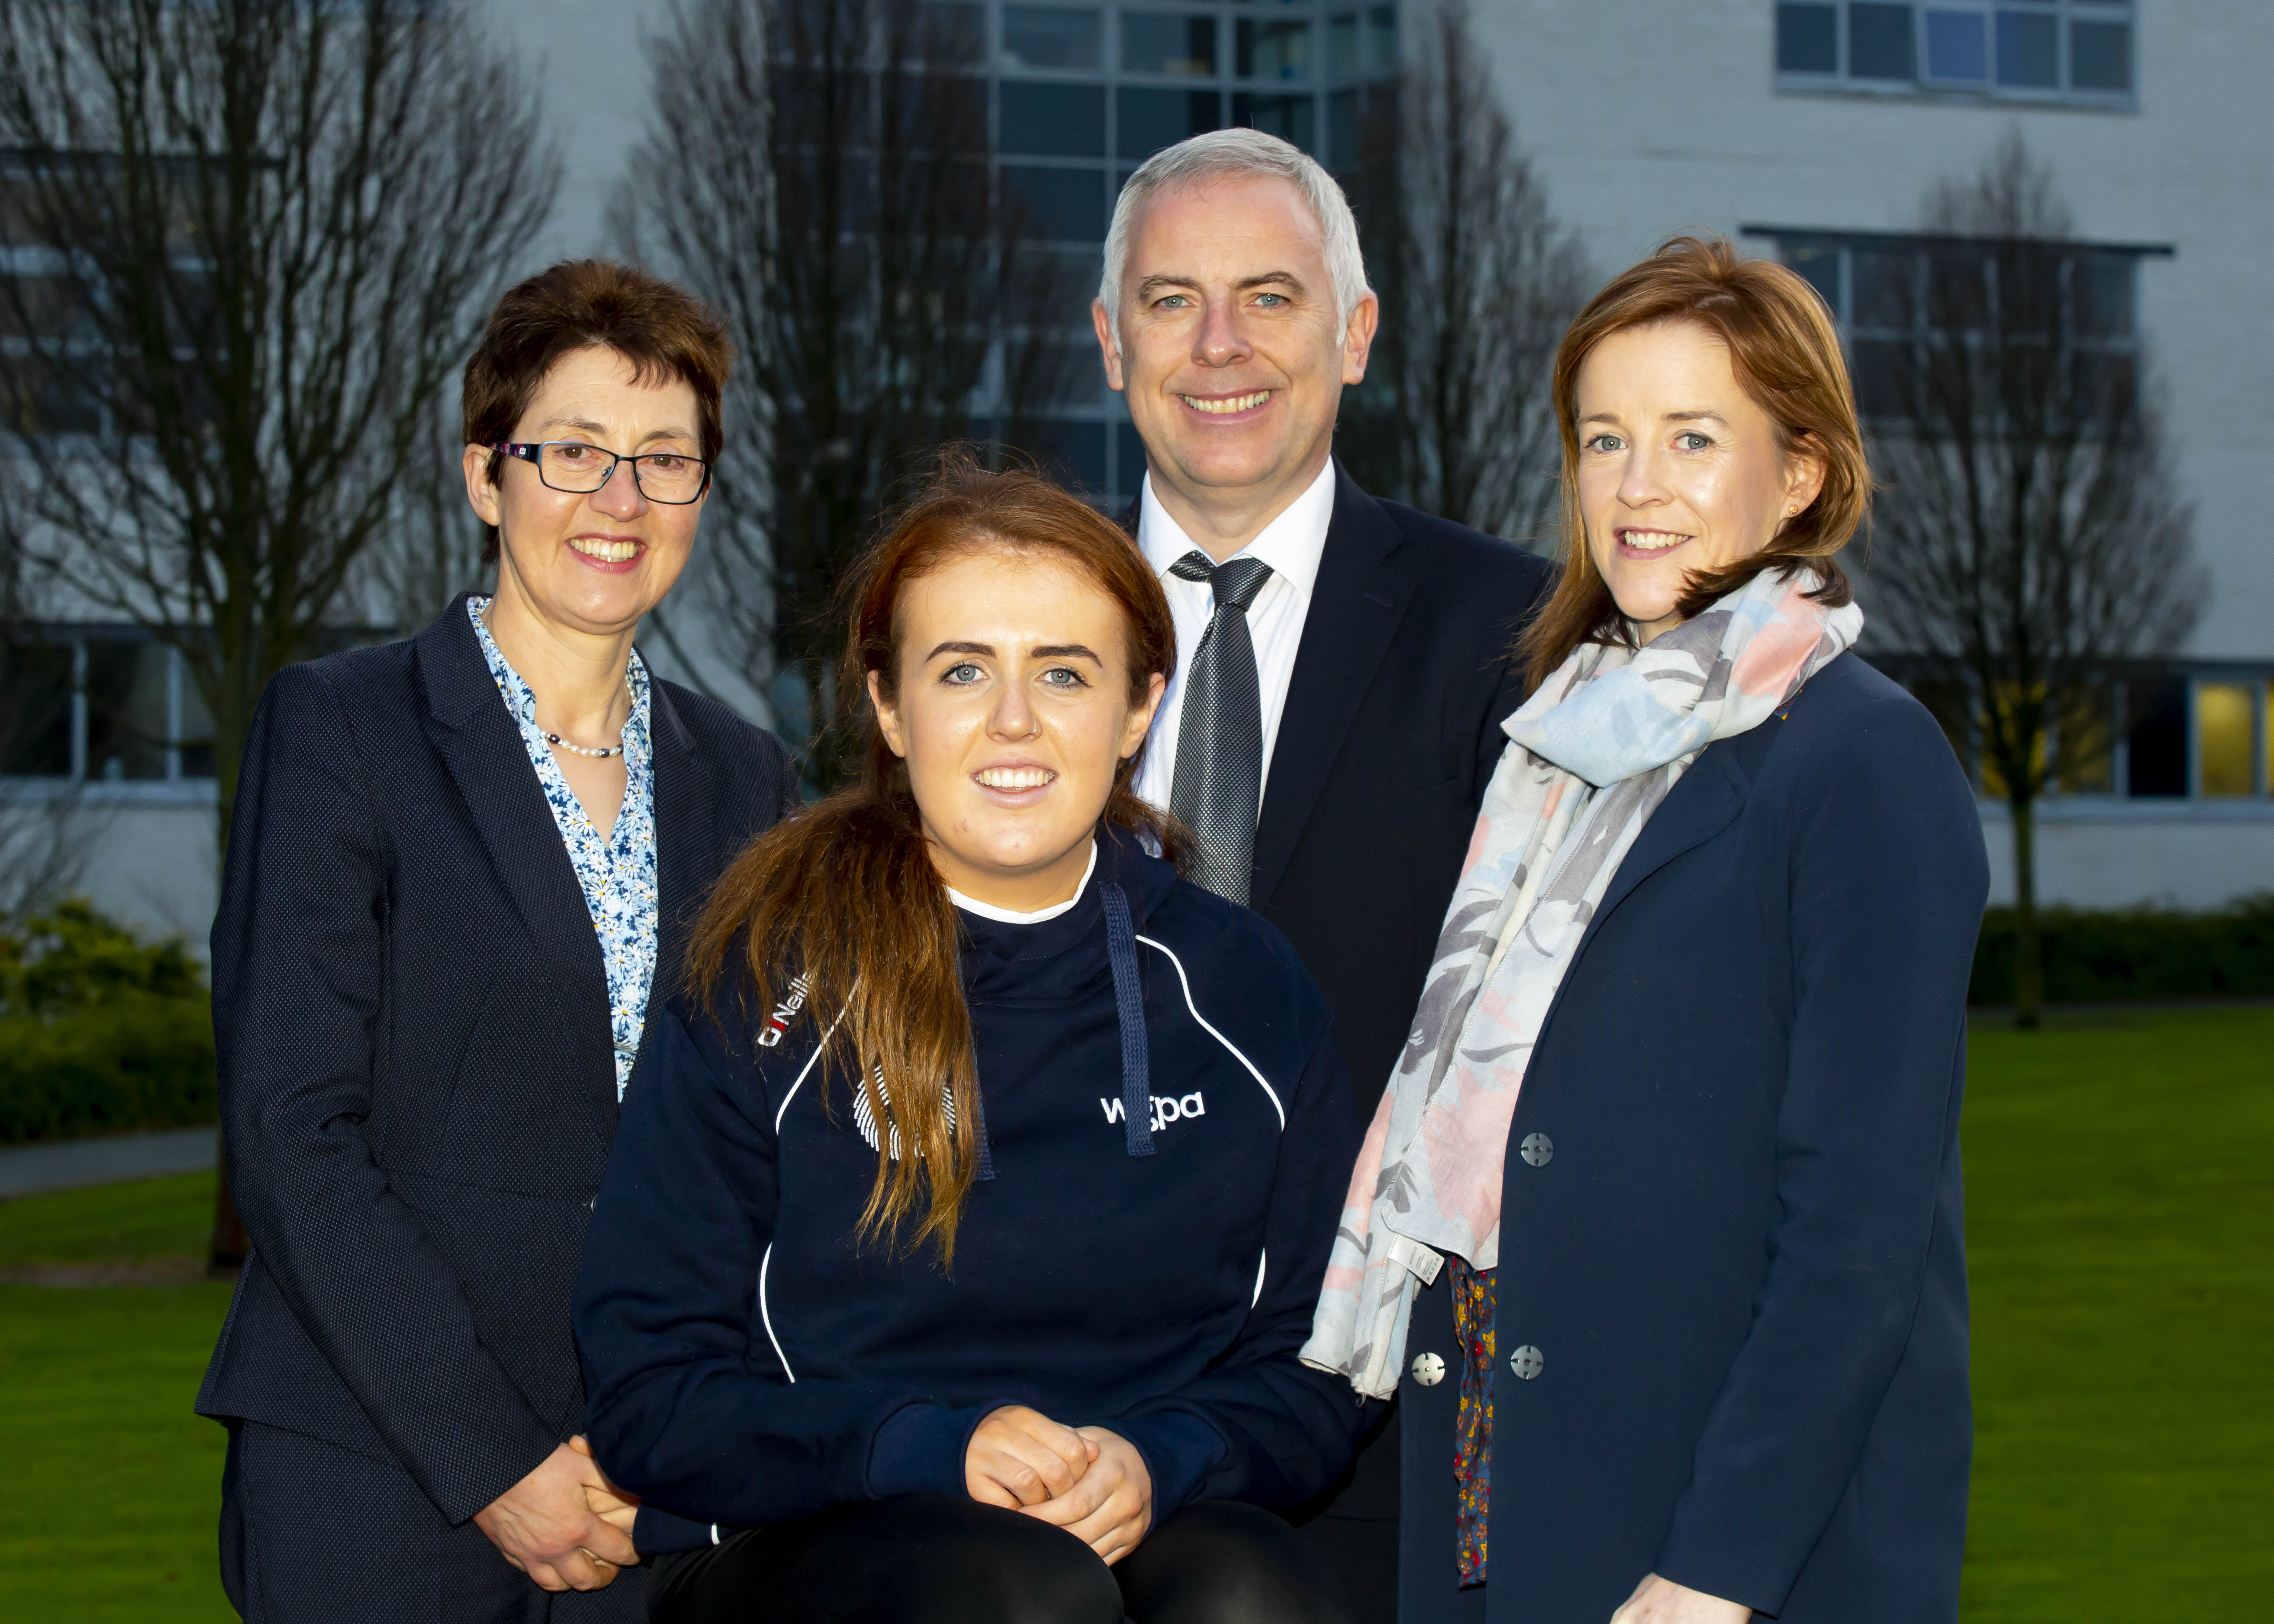 Dr Sheila O Donohoe, Programme Leader MBS Economics and Finance and Dr Paul Morrissey, Programme Leader of the MBS Marketing, Management and HR, Iona Heffernan, WGPA scholarship recipient and Kate Kelly, WGPA.